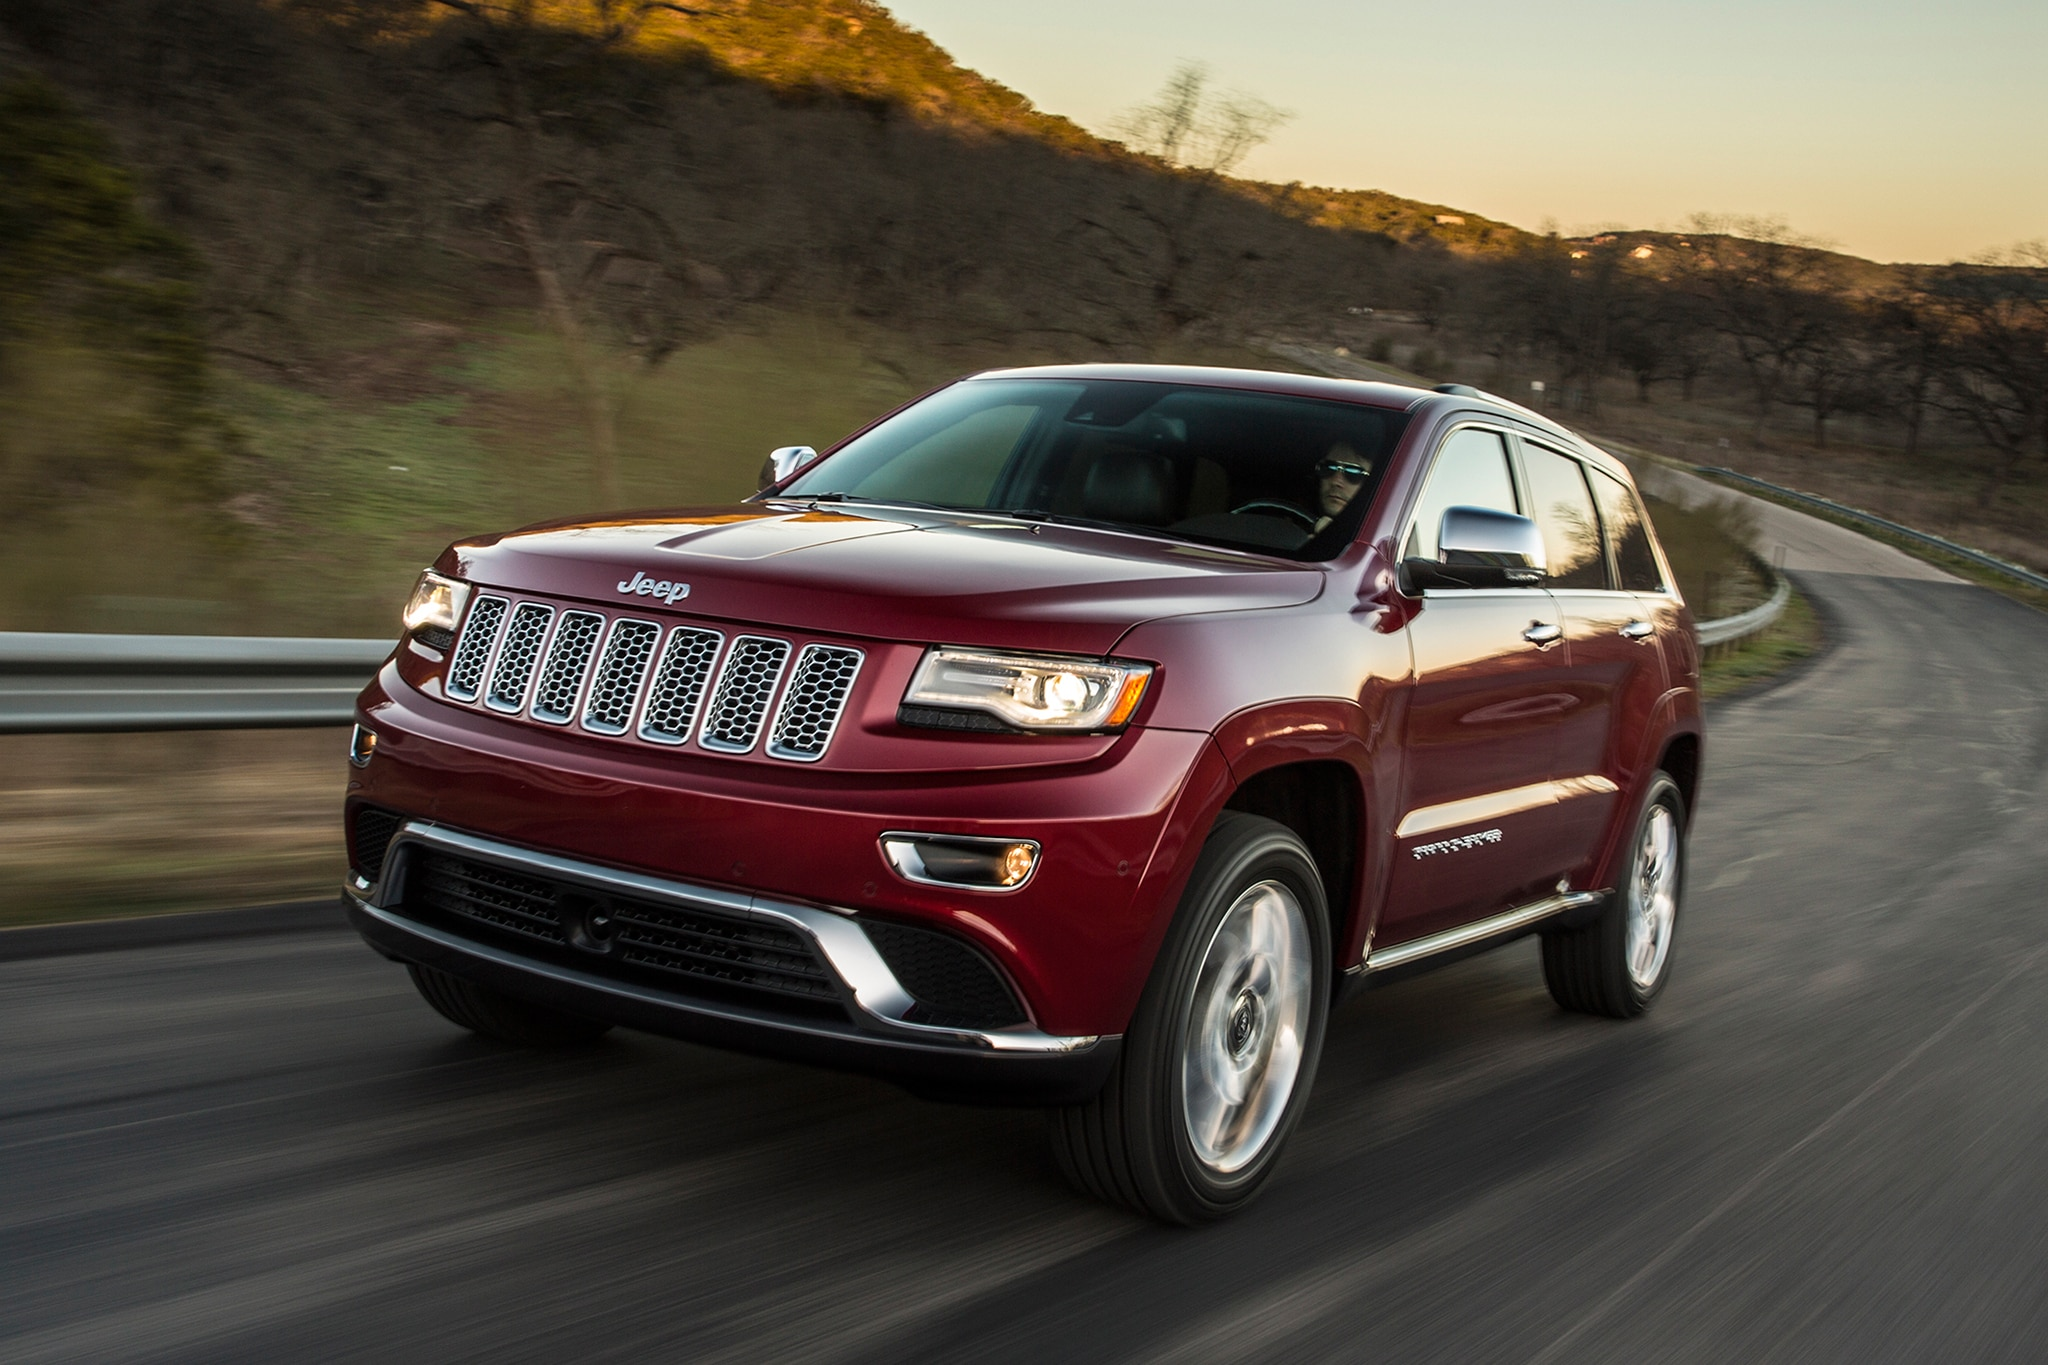 detroit 2013 big fuel economy comfort gains in store for 2014 jeep grand cherokee. Black Bedroom Furniture Sets. Home Design Ideas